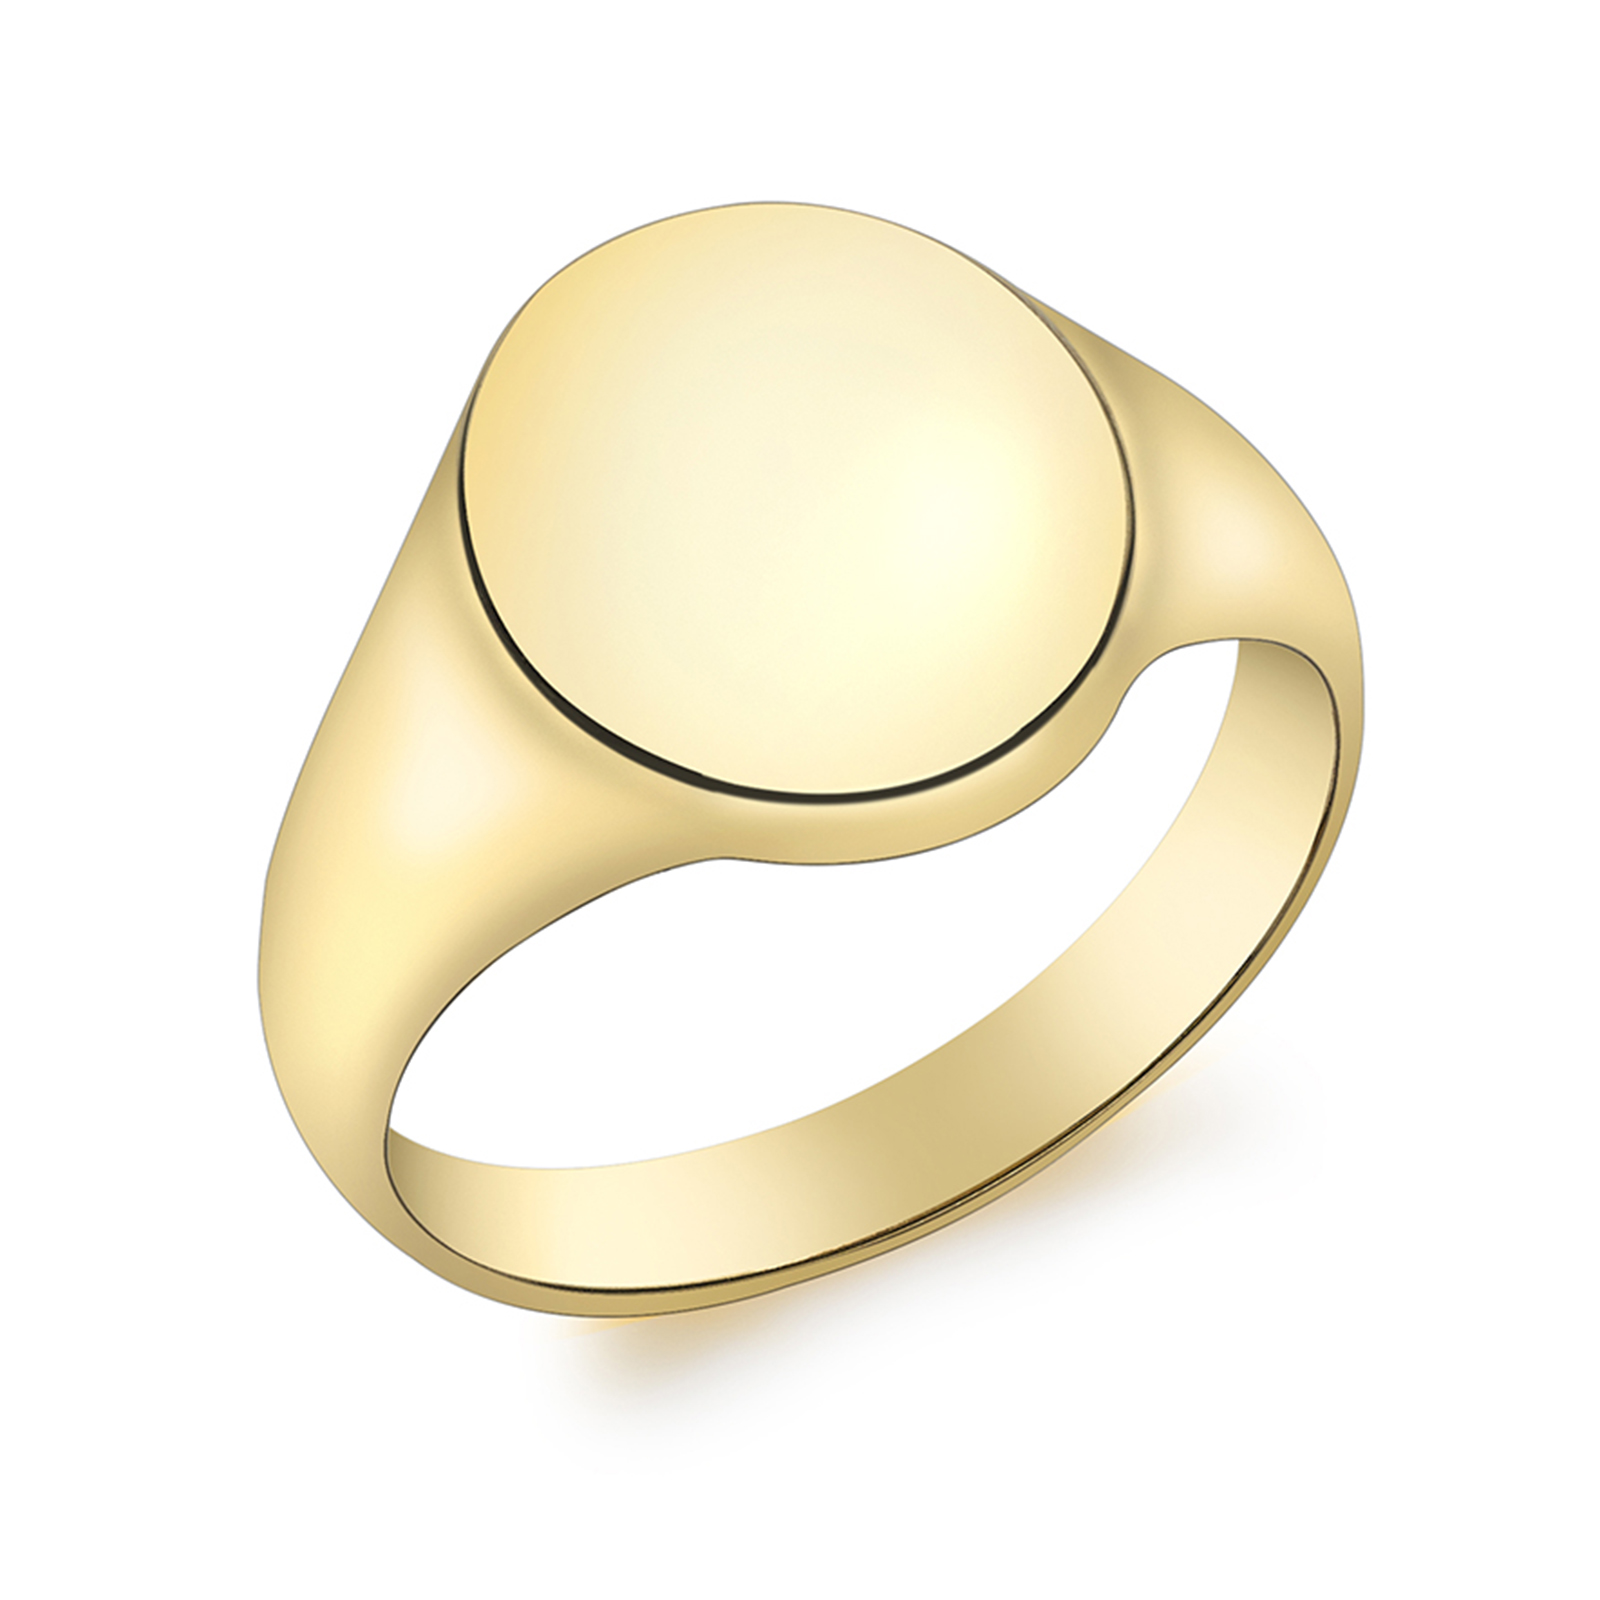 9ct Yellow Gold Oval Plain Signet Ring - Ring Size L